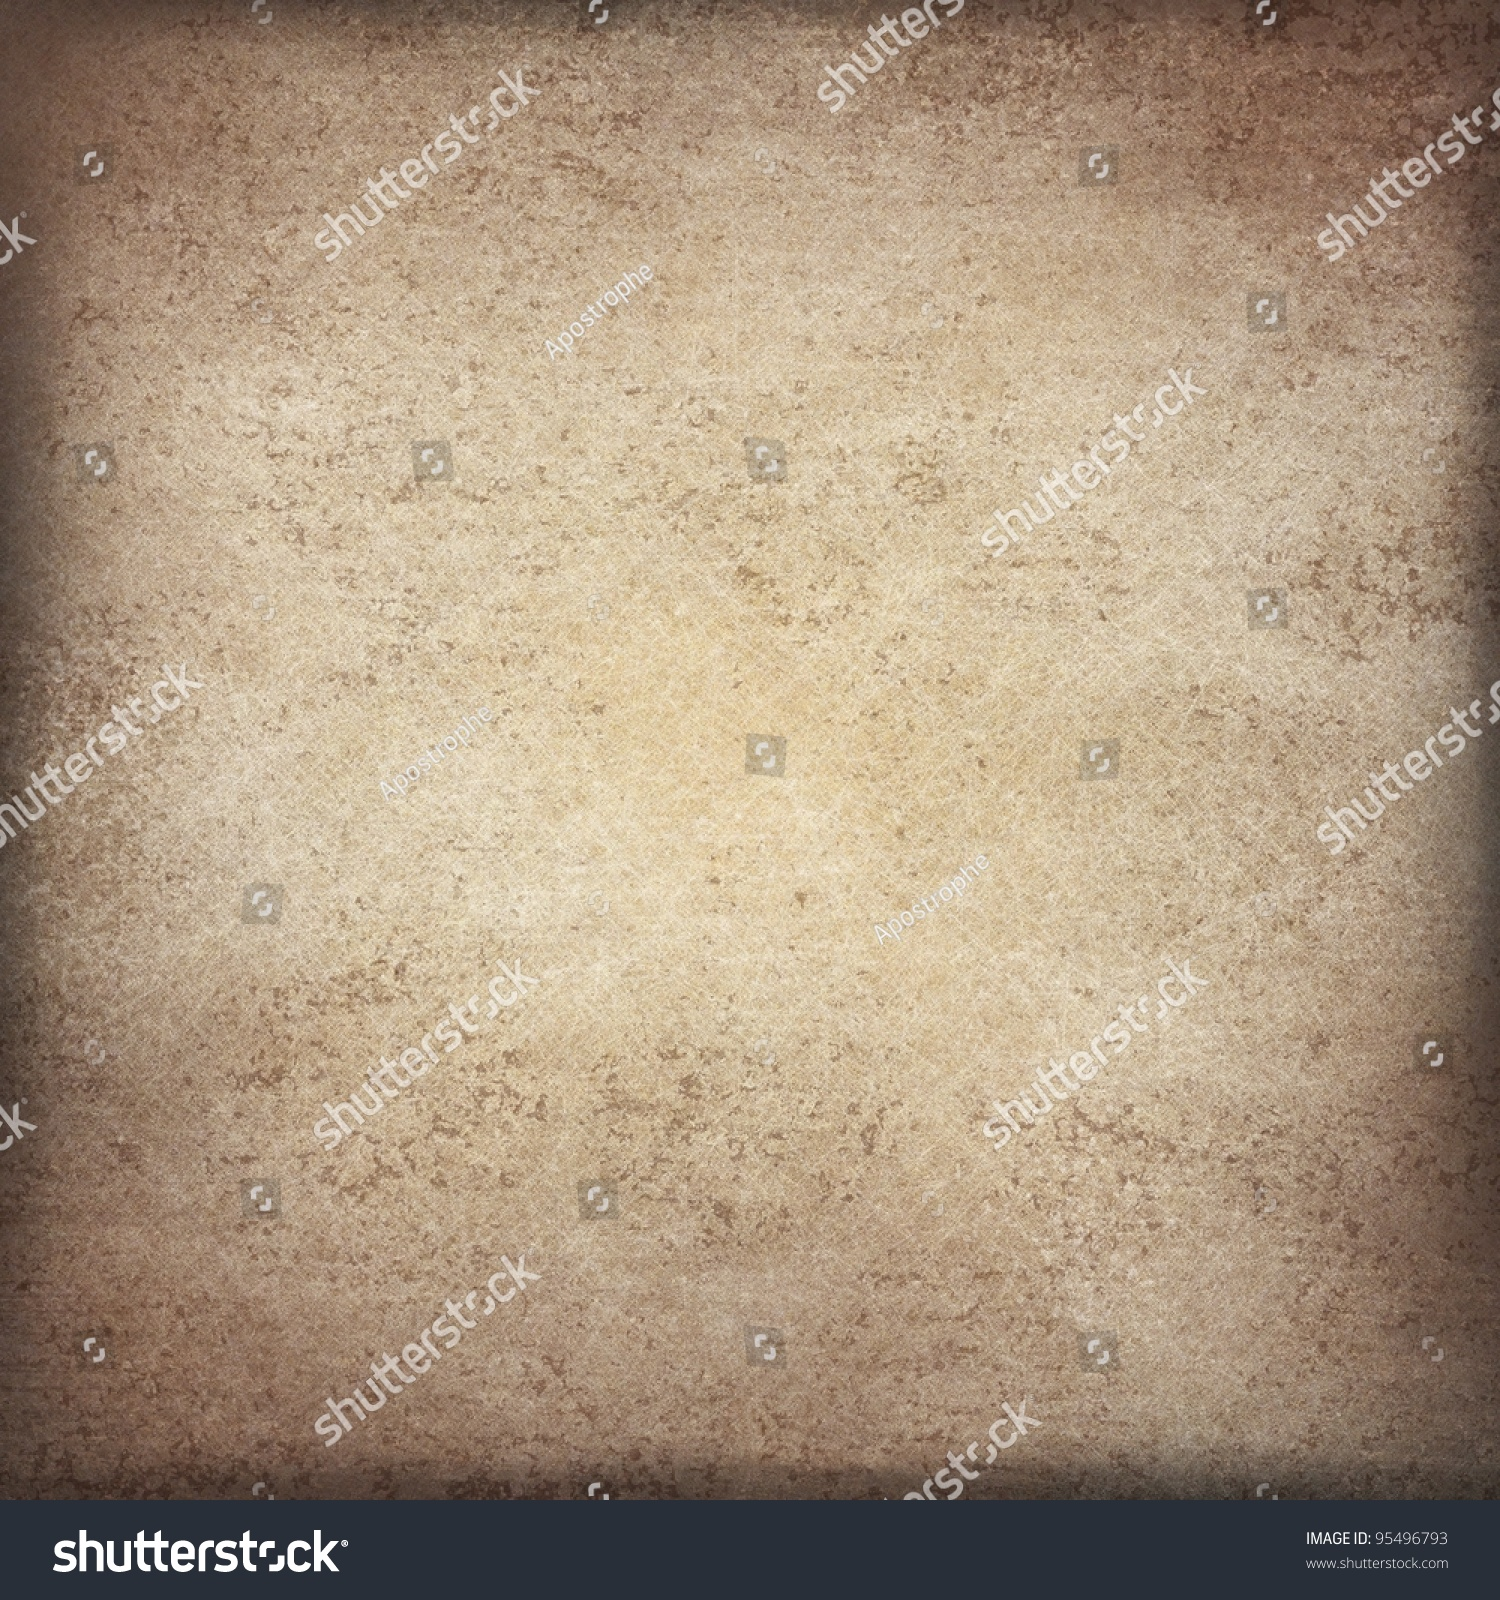 Brown And Beige Parchment Paper Illustration Background ...